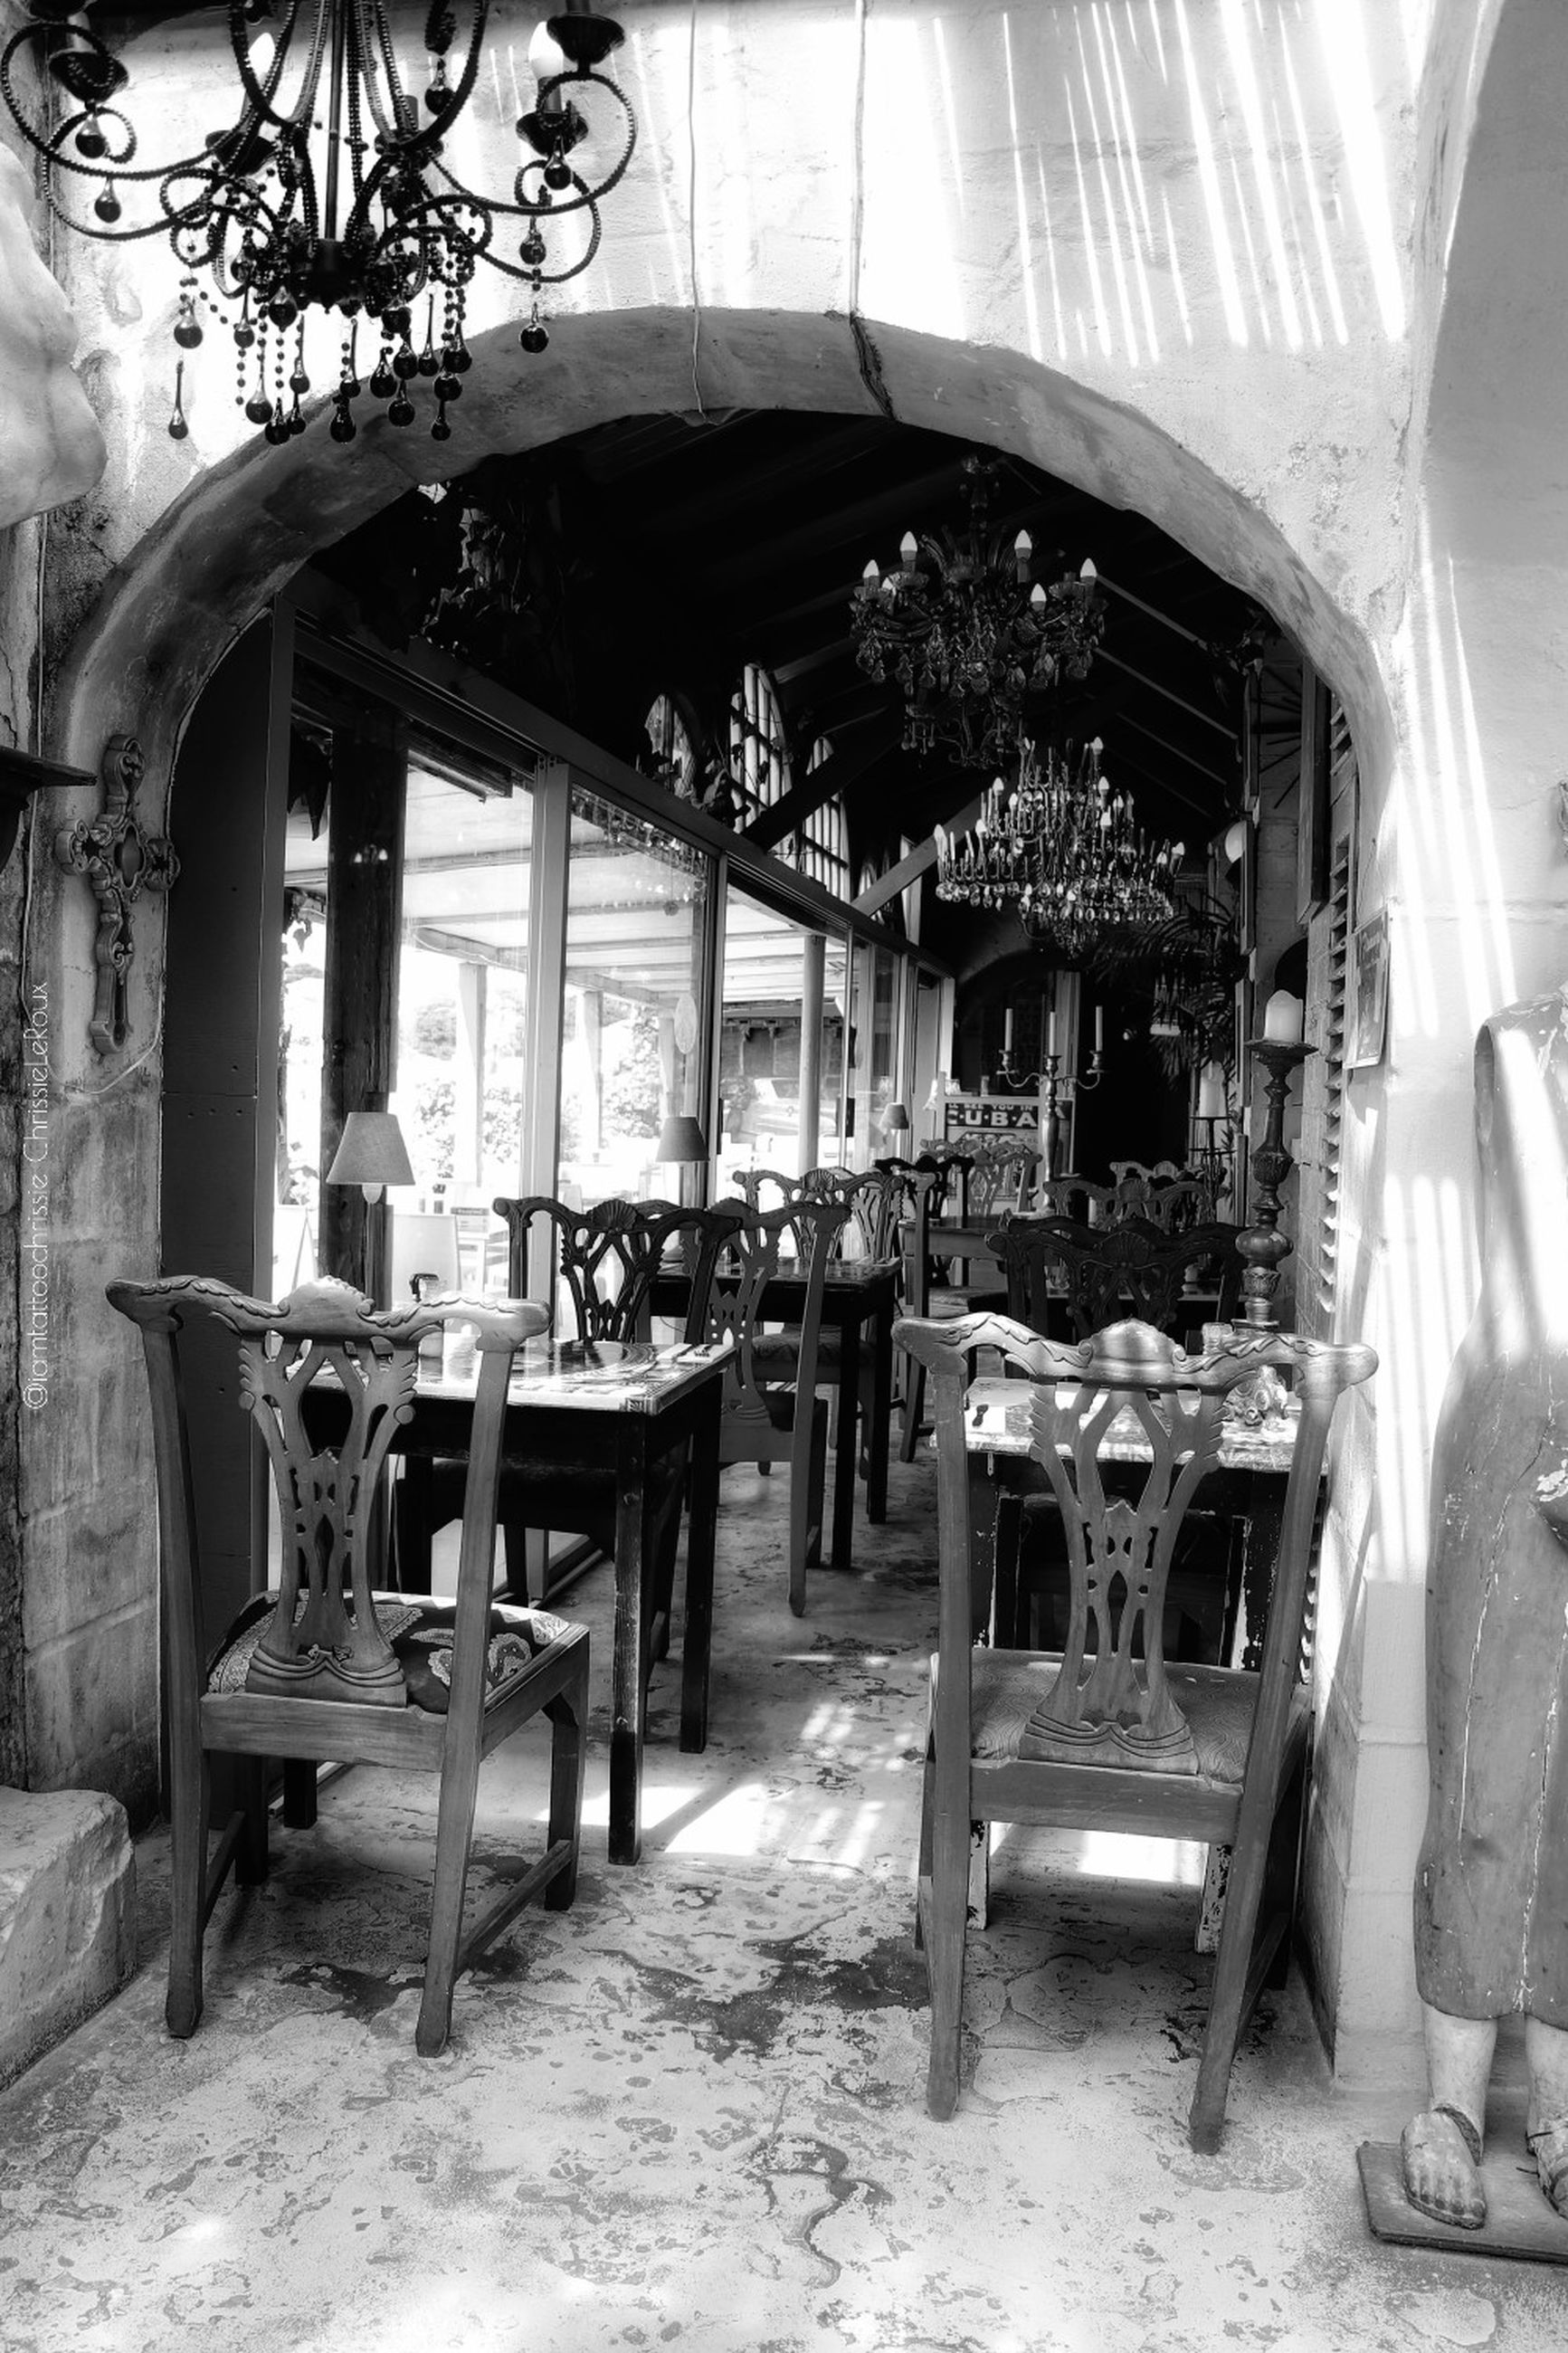 seat, table, chair, business, restaurant, architecture, indoors, food and drink, furniture, cafe, built structure, incidental people, day, illuminated, building, food, bar - drink establishment, place setting, setting, antique, dining